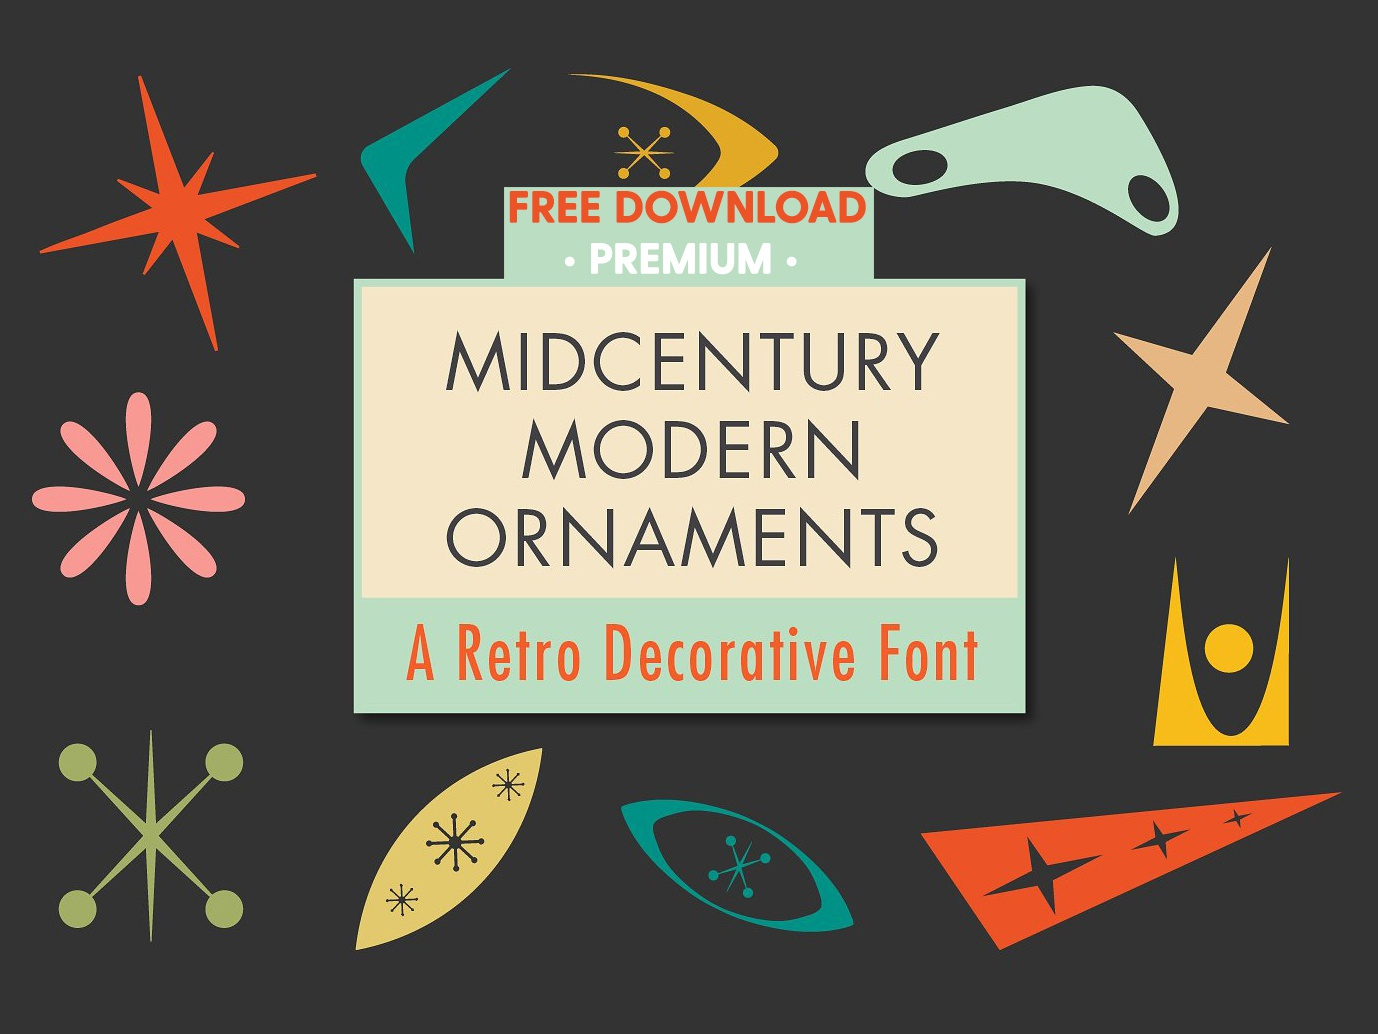 Free Premium Download Mid Century Modern Ornaments Font